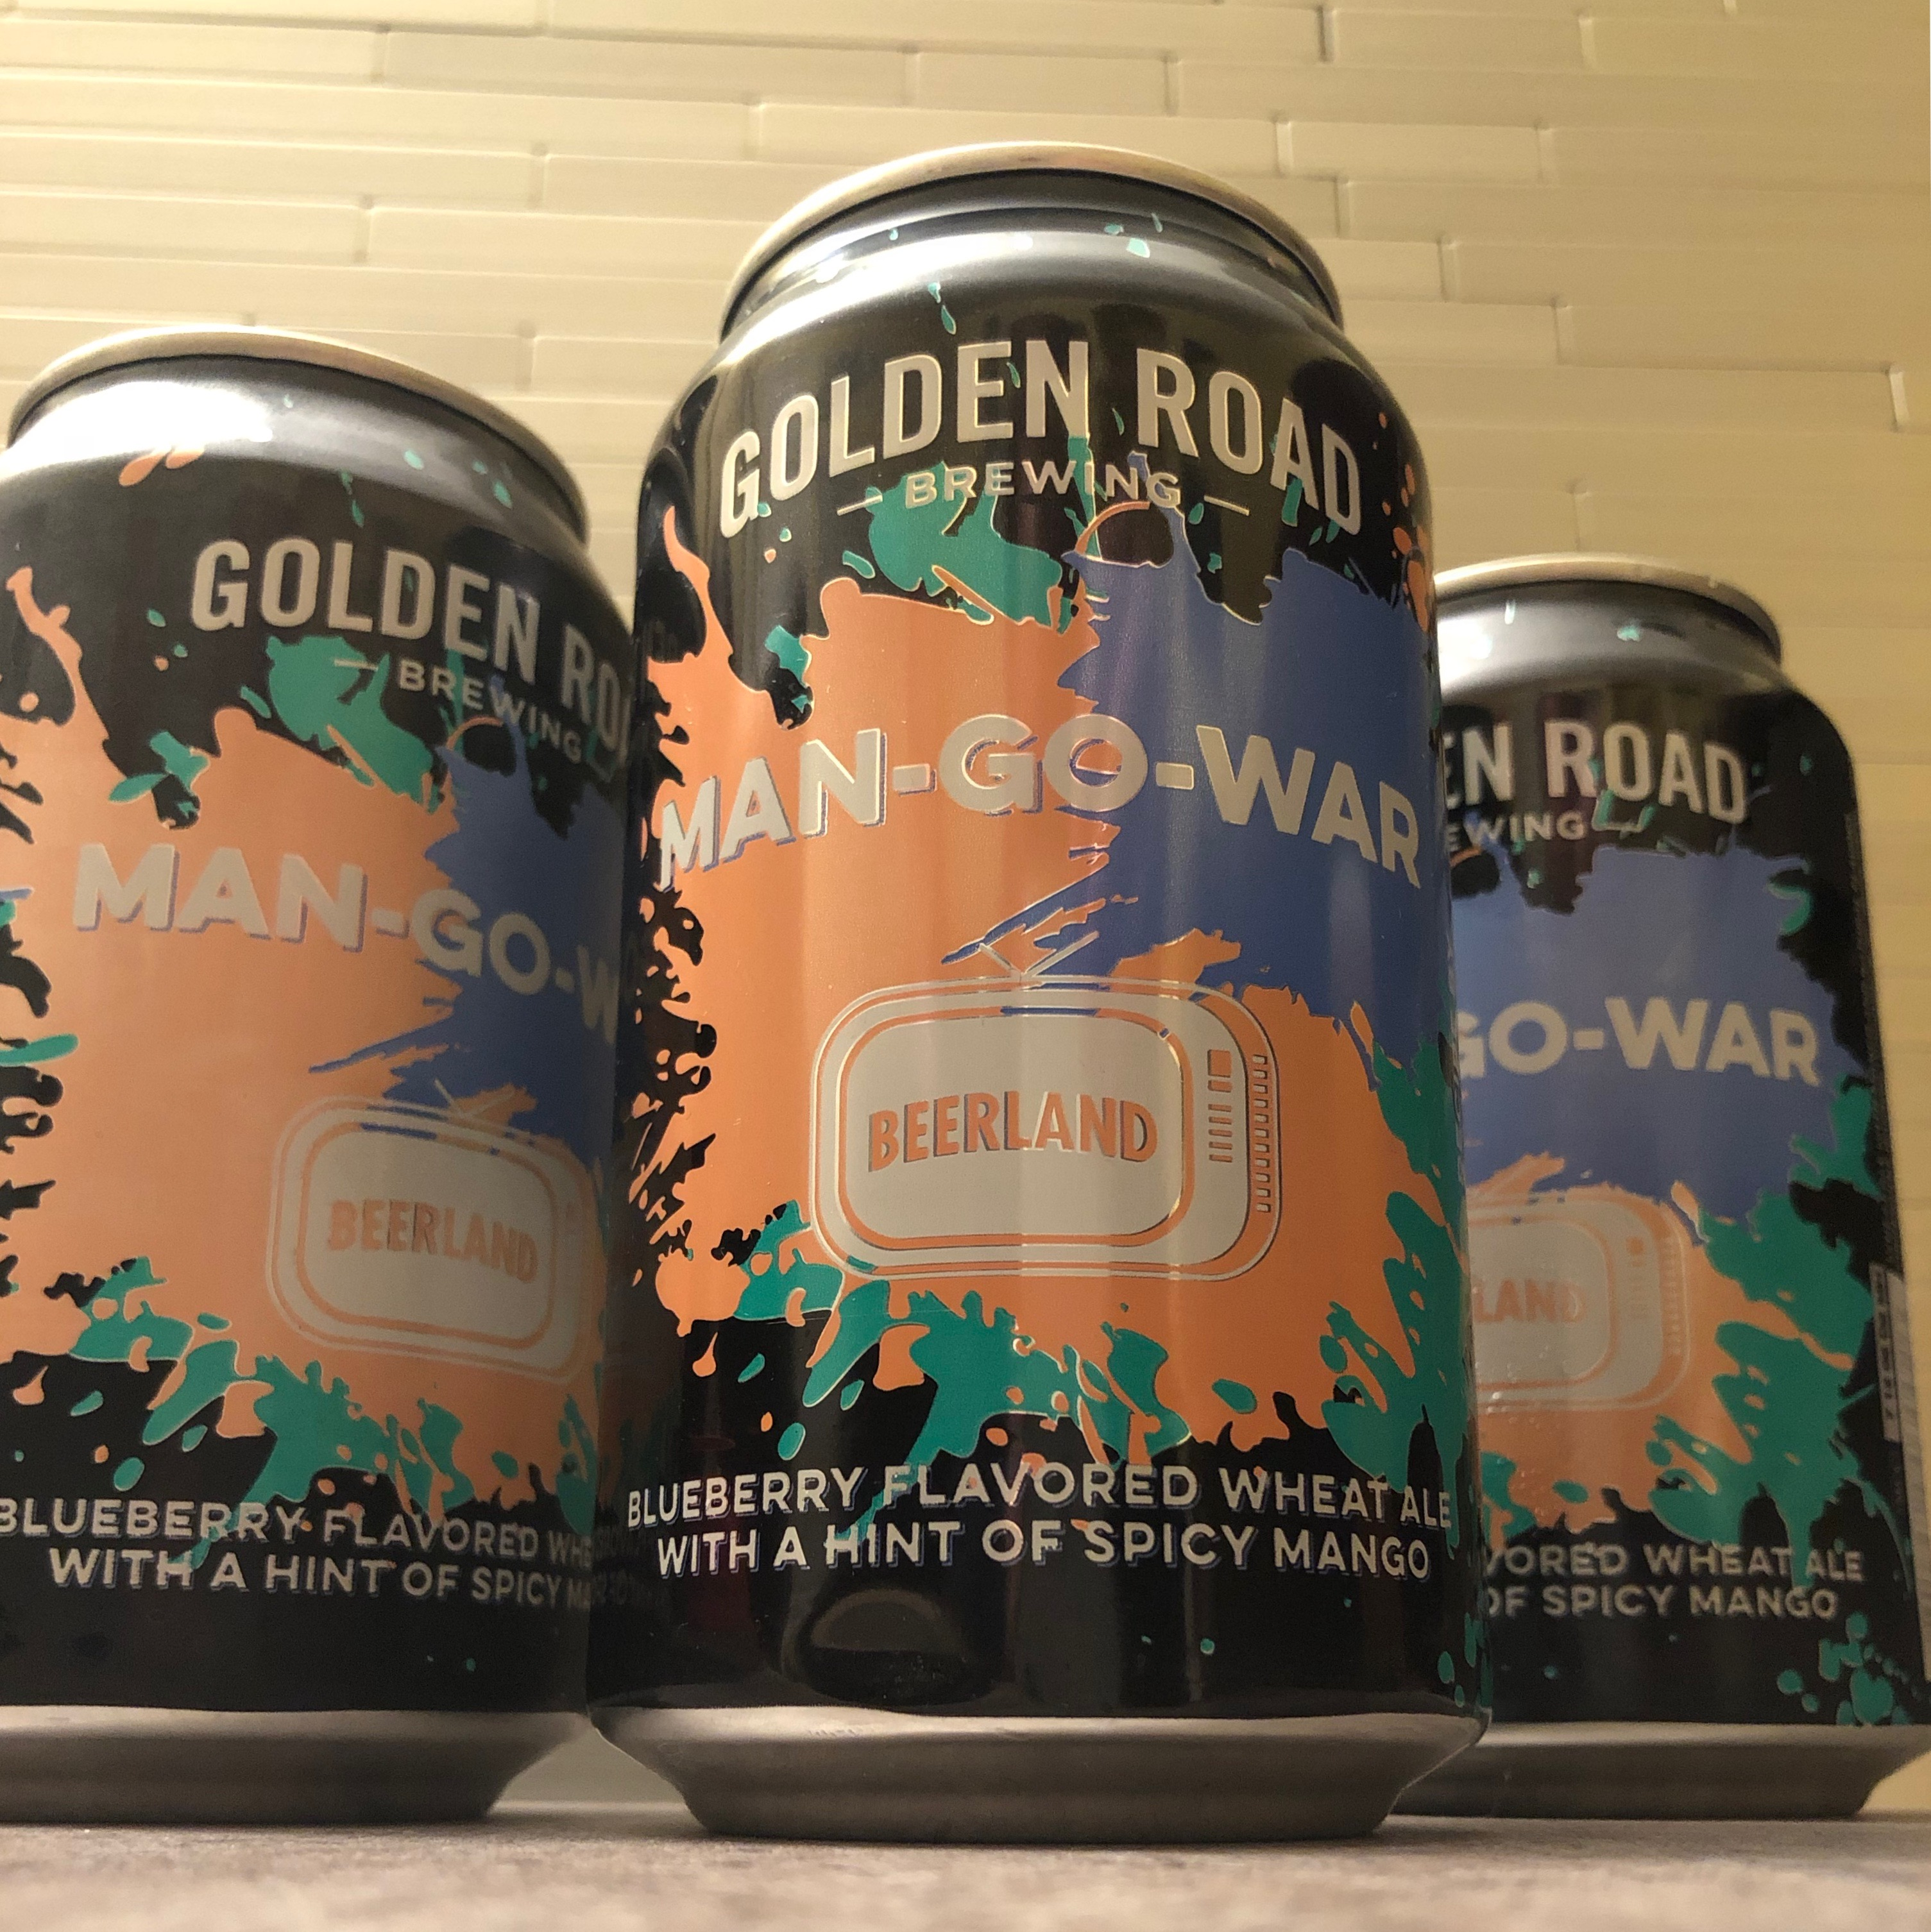 Cans of Golden Road Brewing Man-Go-War Wheat Ale brewed in collaboration with Michael Flinn & Jonathan Billings, winners of BEERLAND Season Two.